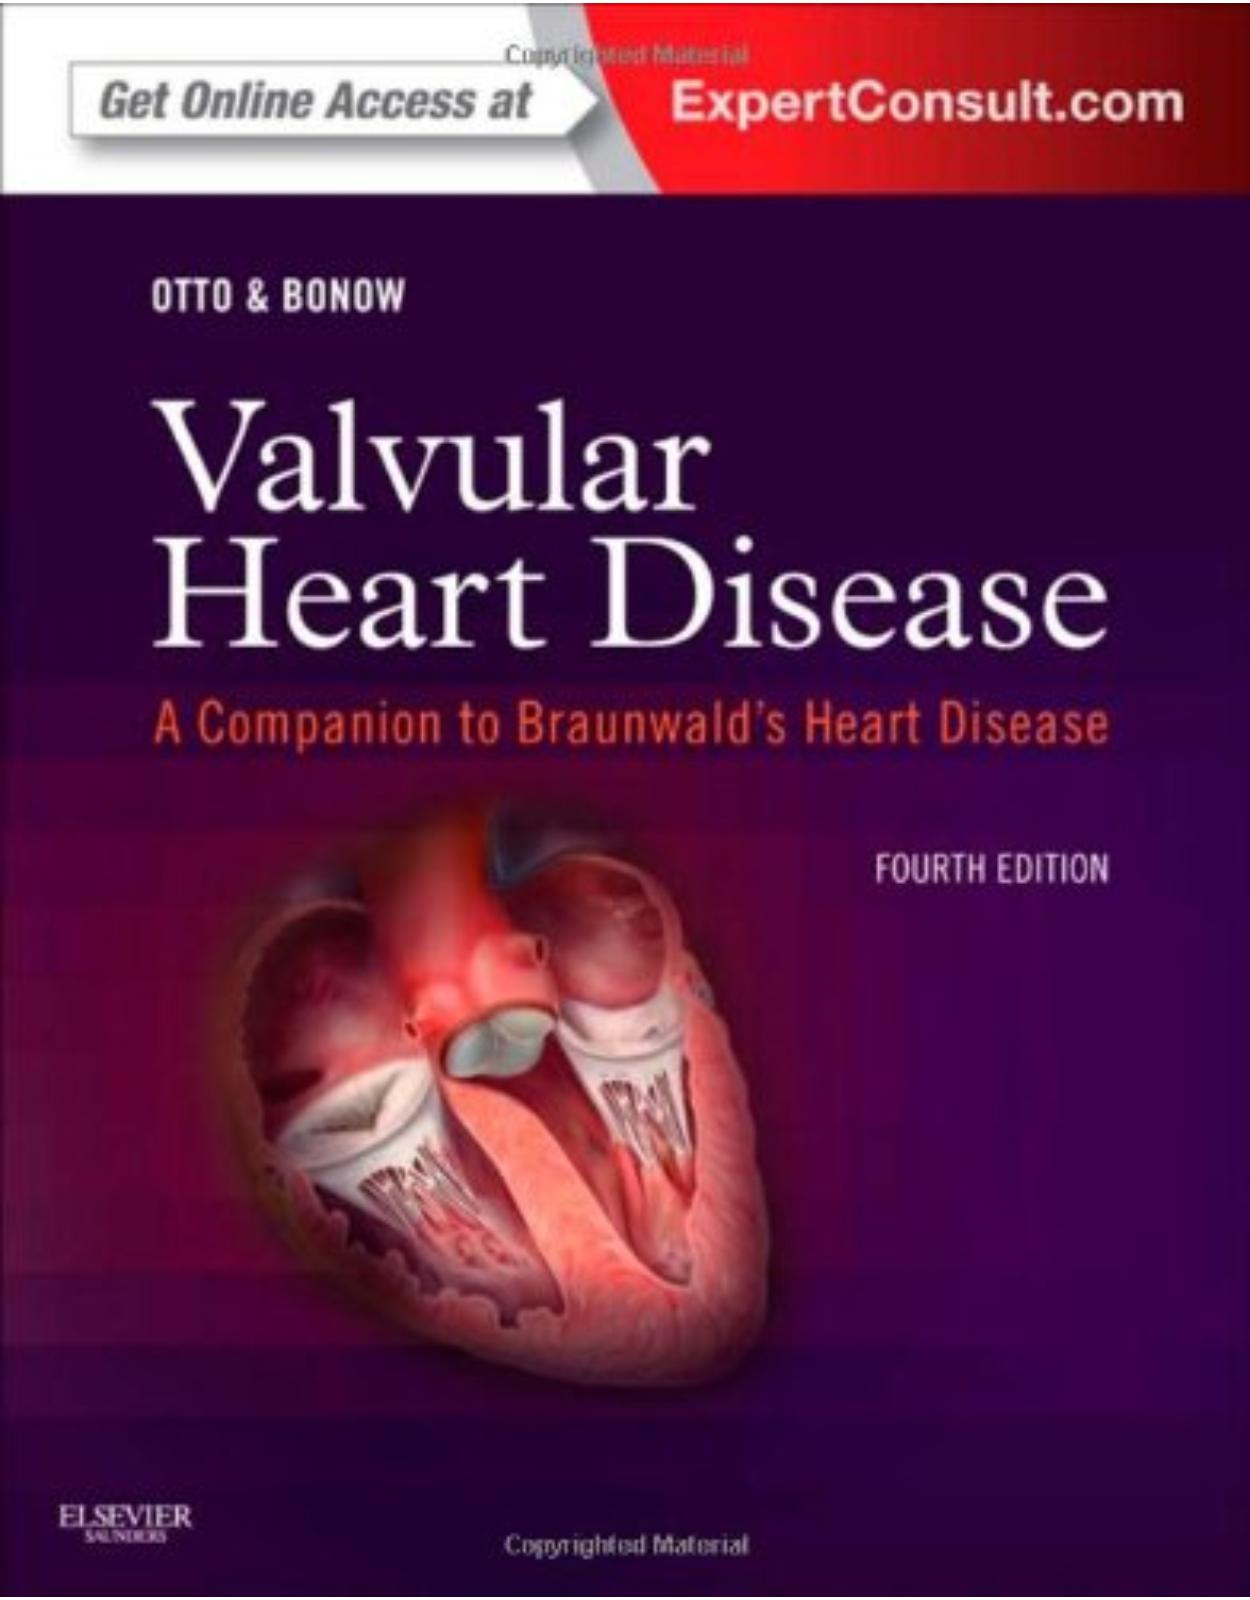 Valvular Heart Disease: A Companion to Braunwald's Heart Disease: Expert Consult - Online and Print, 4e